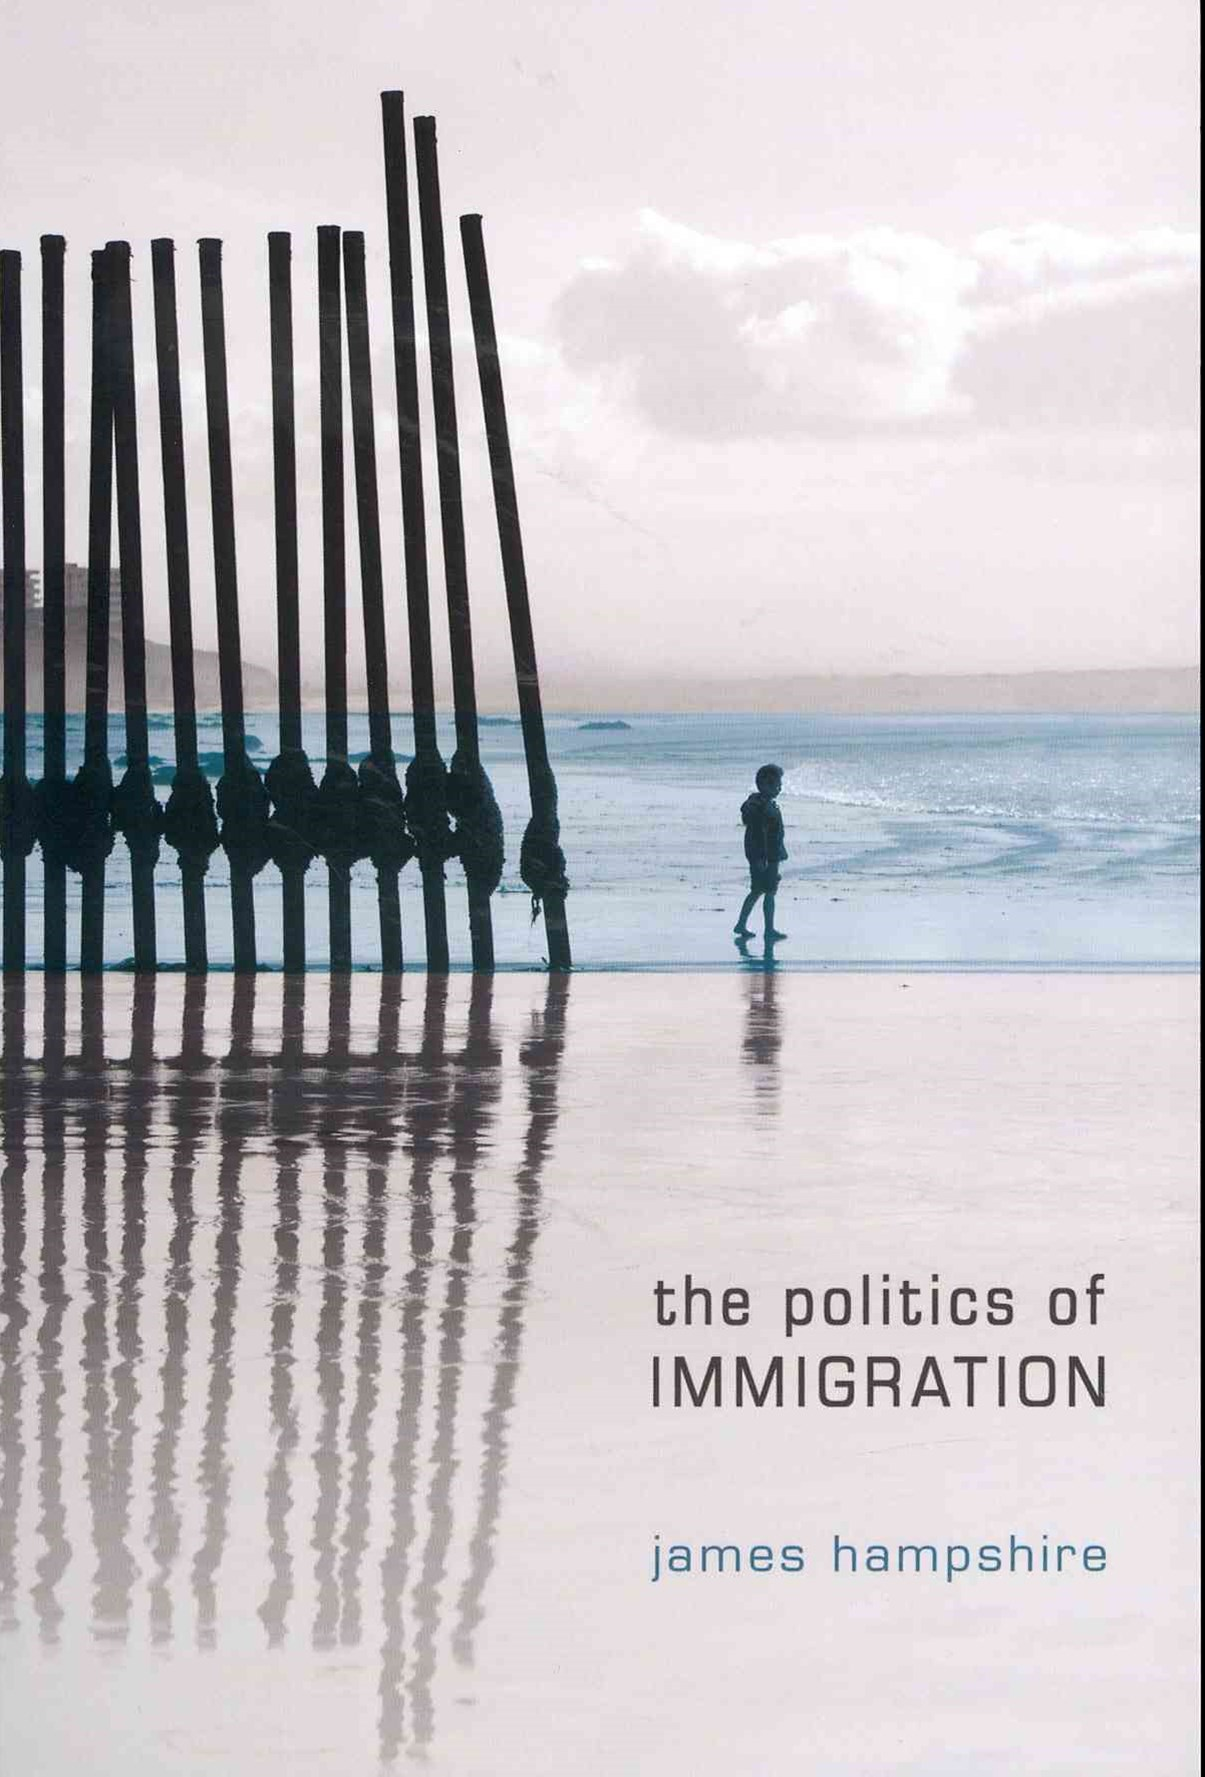 The Politics of Immigration - Contradictions of   the Liberal State